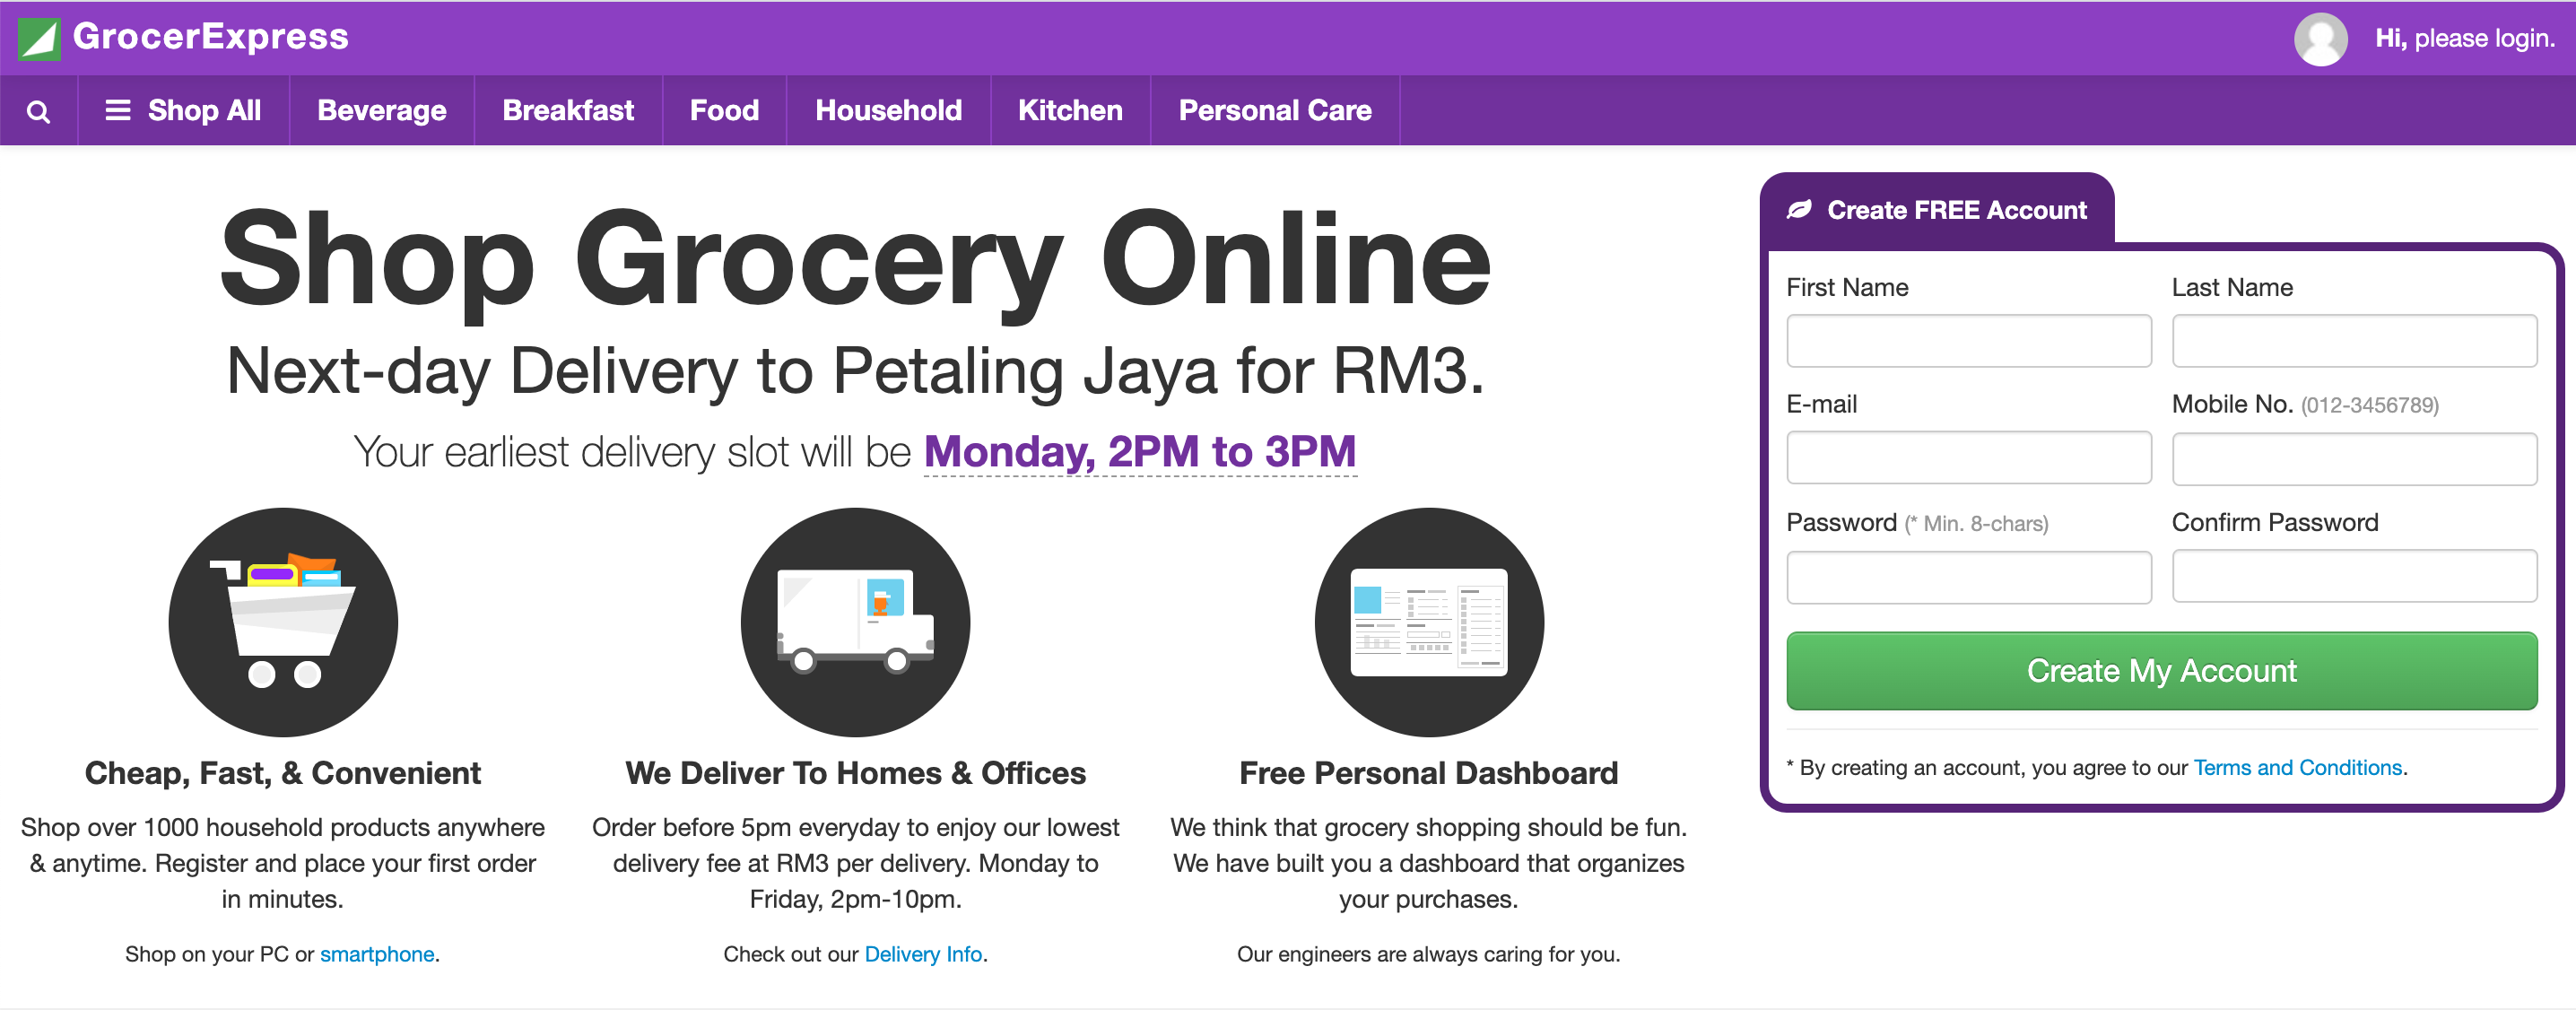 grocer express grocery delivery malaysia